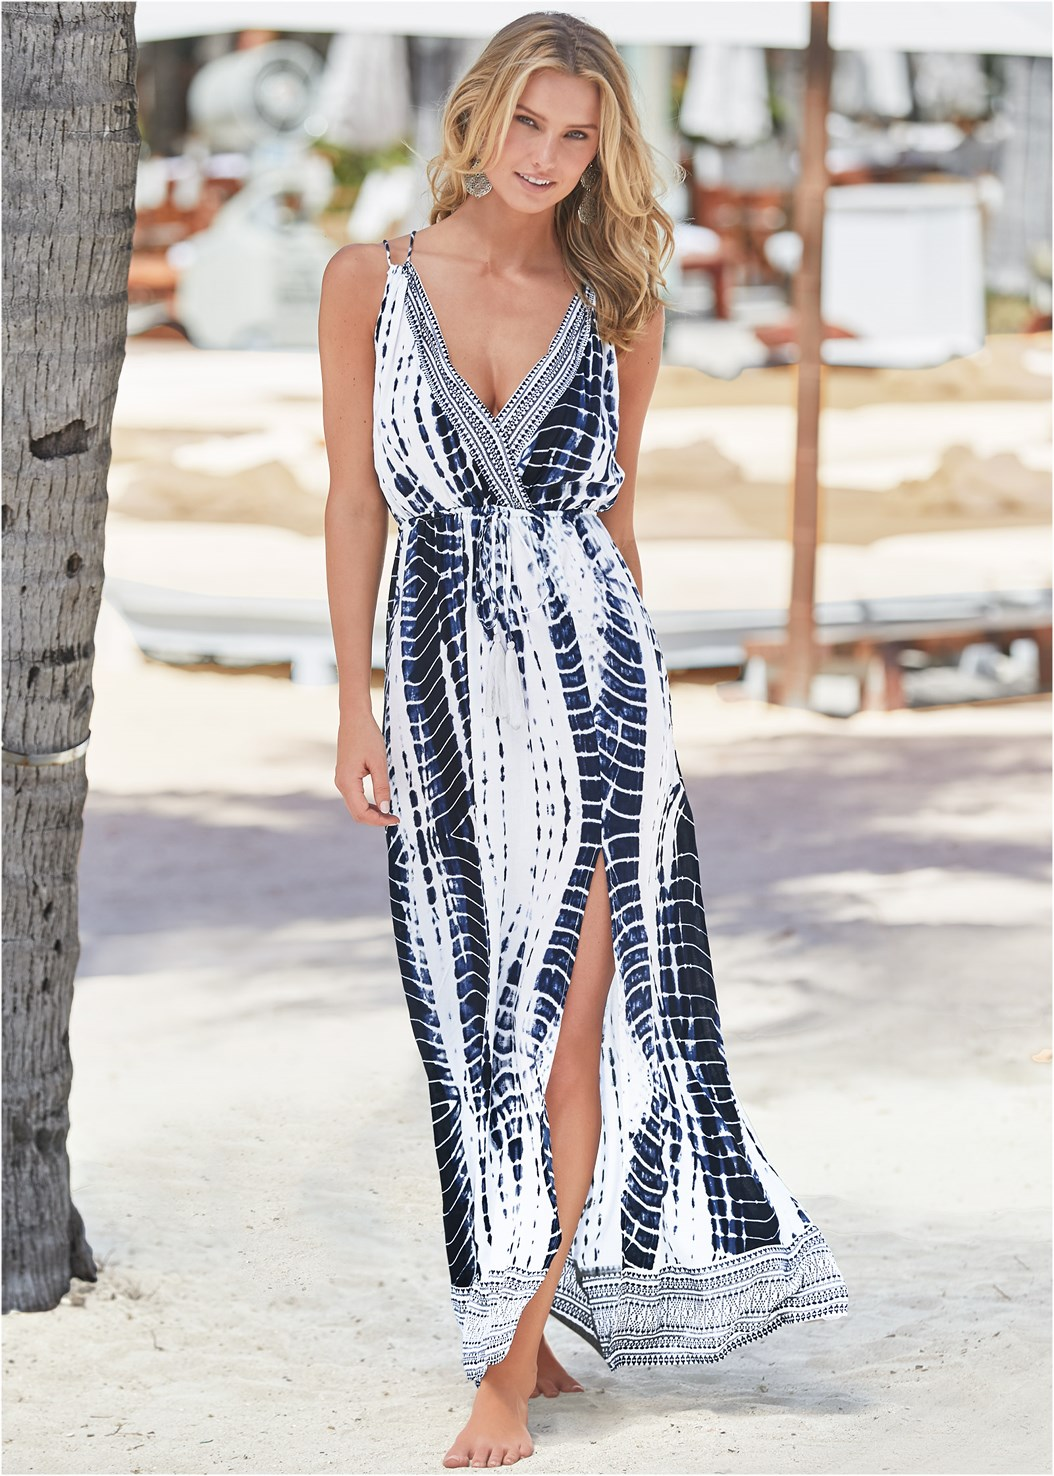 Maxi Cover-Up Dress,Enhancer Push Up Ring Halter Triangle Top ,Scoop Front Classic Bikini Bottom